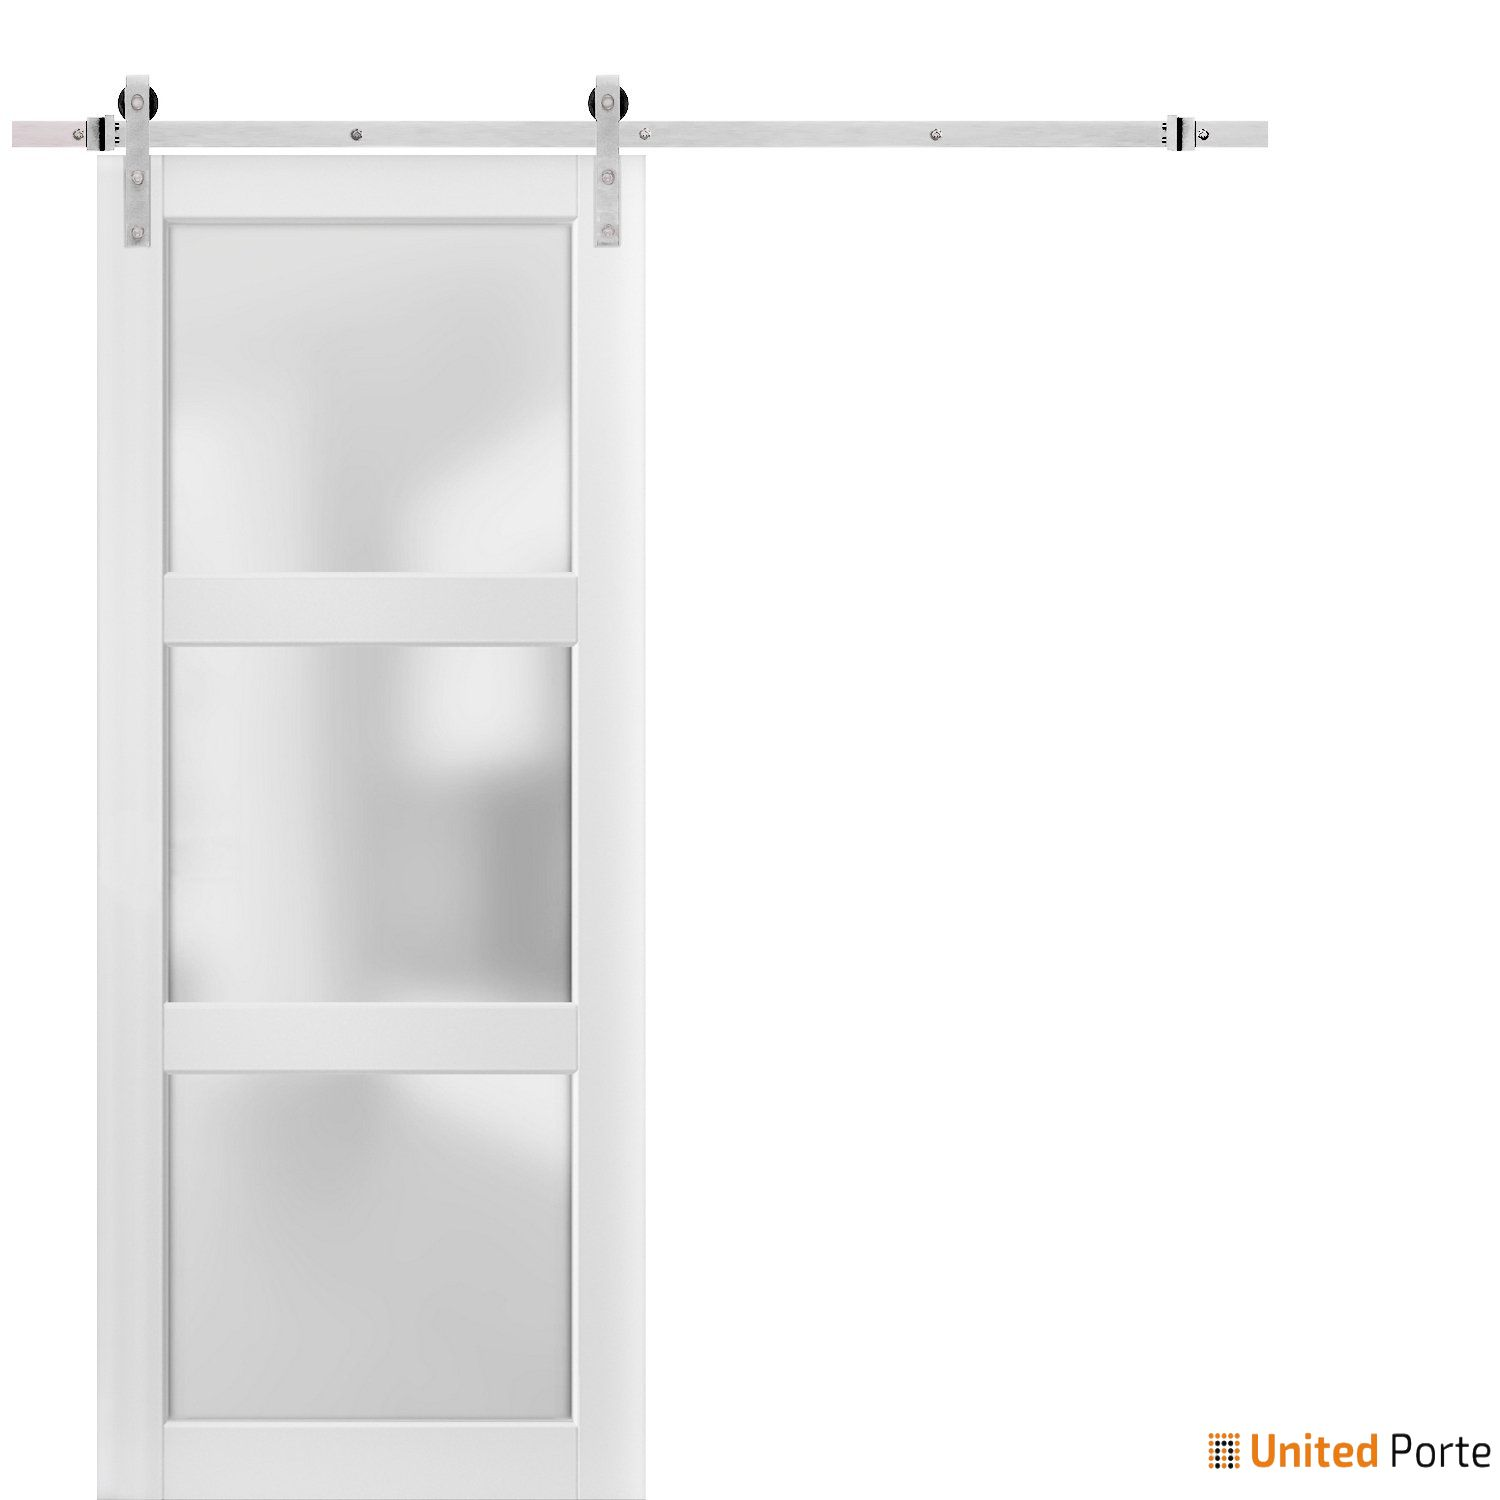 Lucia 2552 White Sturdy Barn Door Frosted Glass with Stainless Hardware | Solid Panel Interior Barn Doors